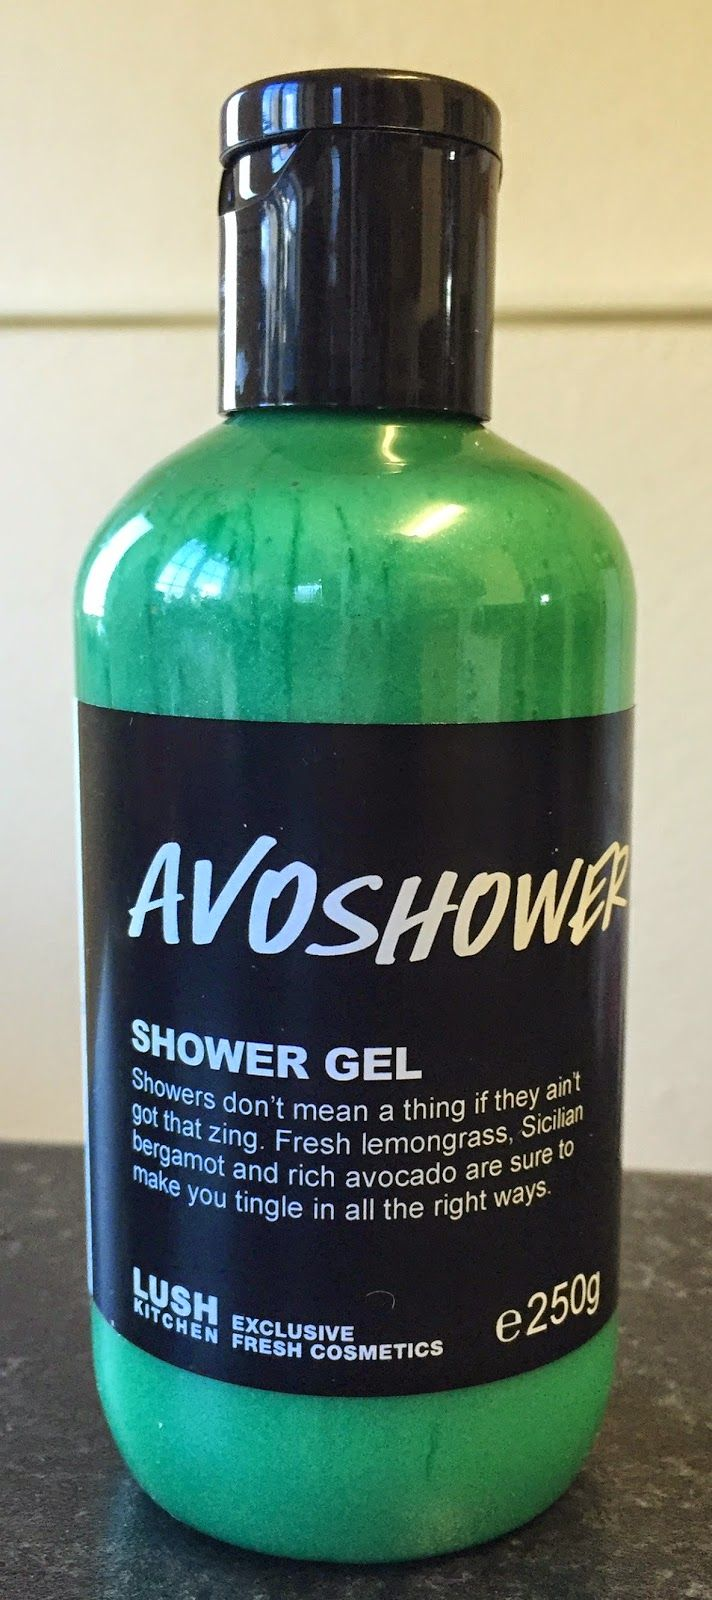 Avoshower Shower Gel - Limited Edition for Windsor, ON Lush store... great citrusy smell and wonderful stress relief at the end of the day OR to start your morning right :)